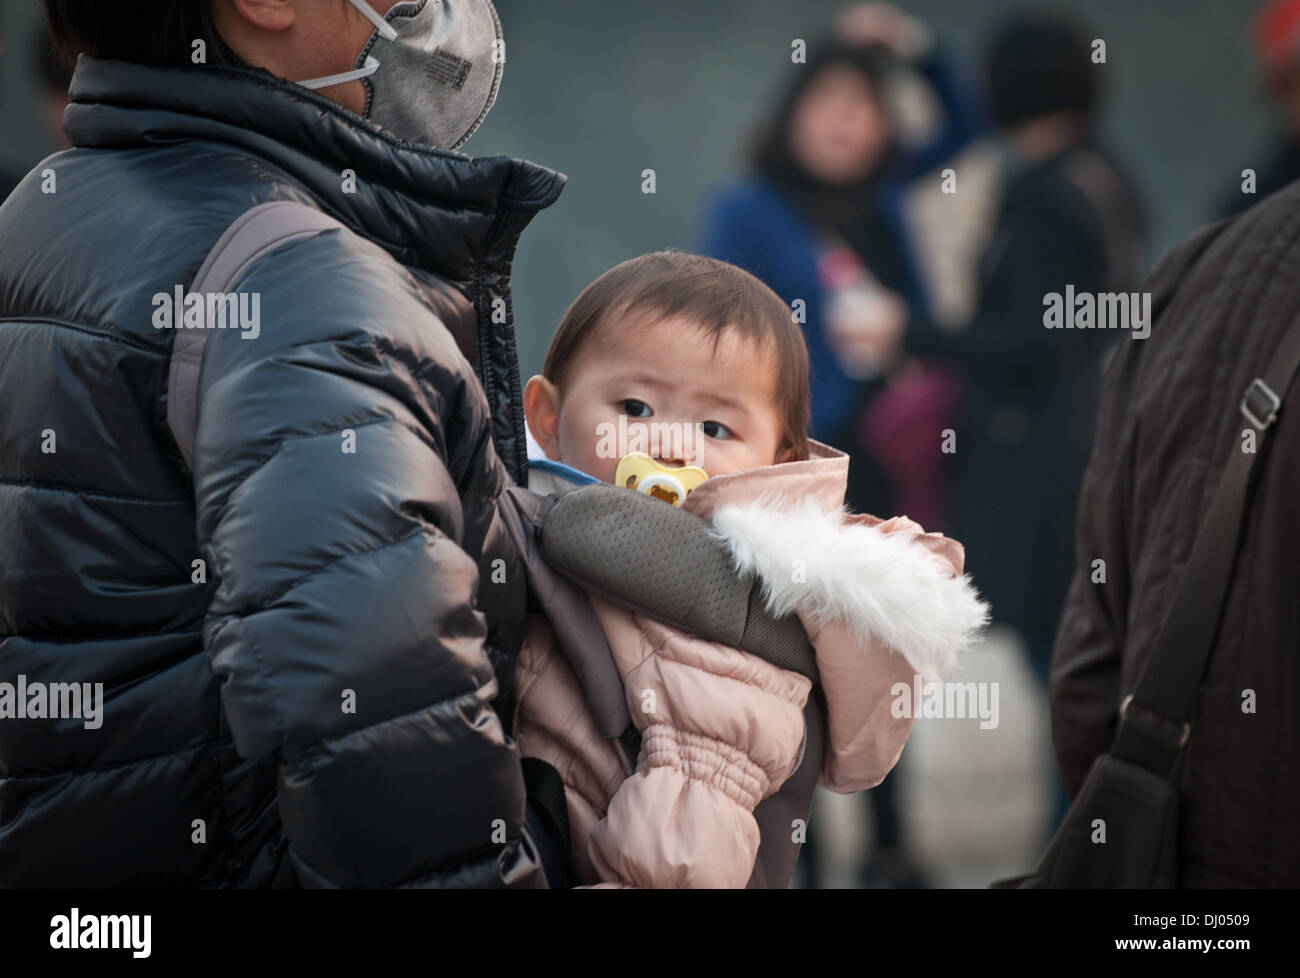 Man carrying his baby in carriers, Temple of Heaven, Beijing, China - Stock Image